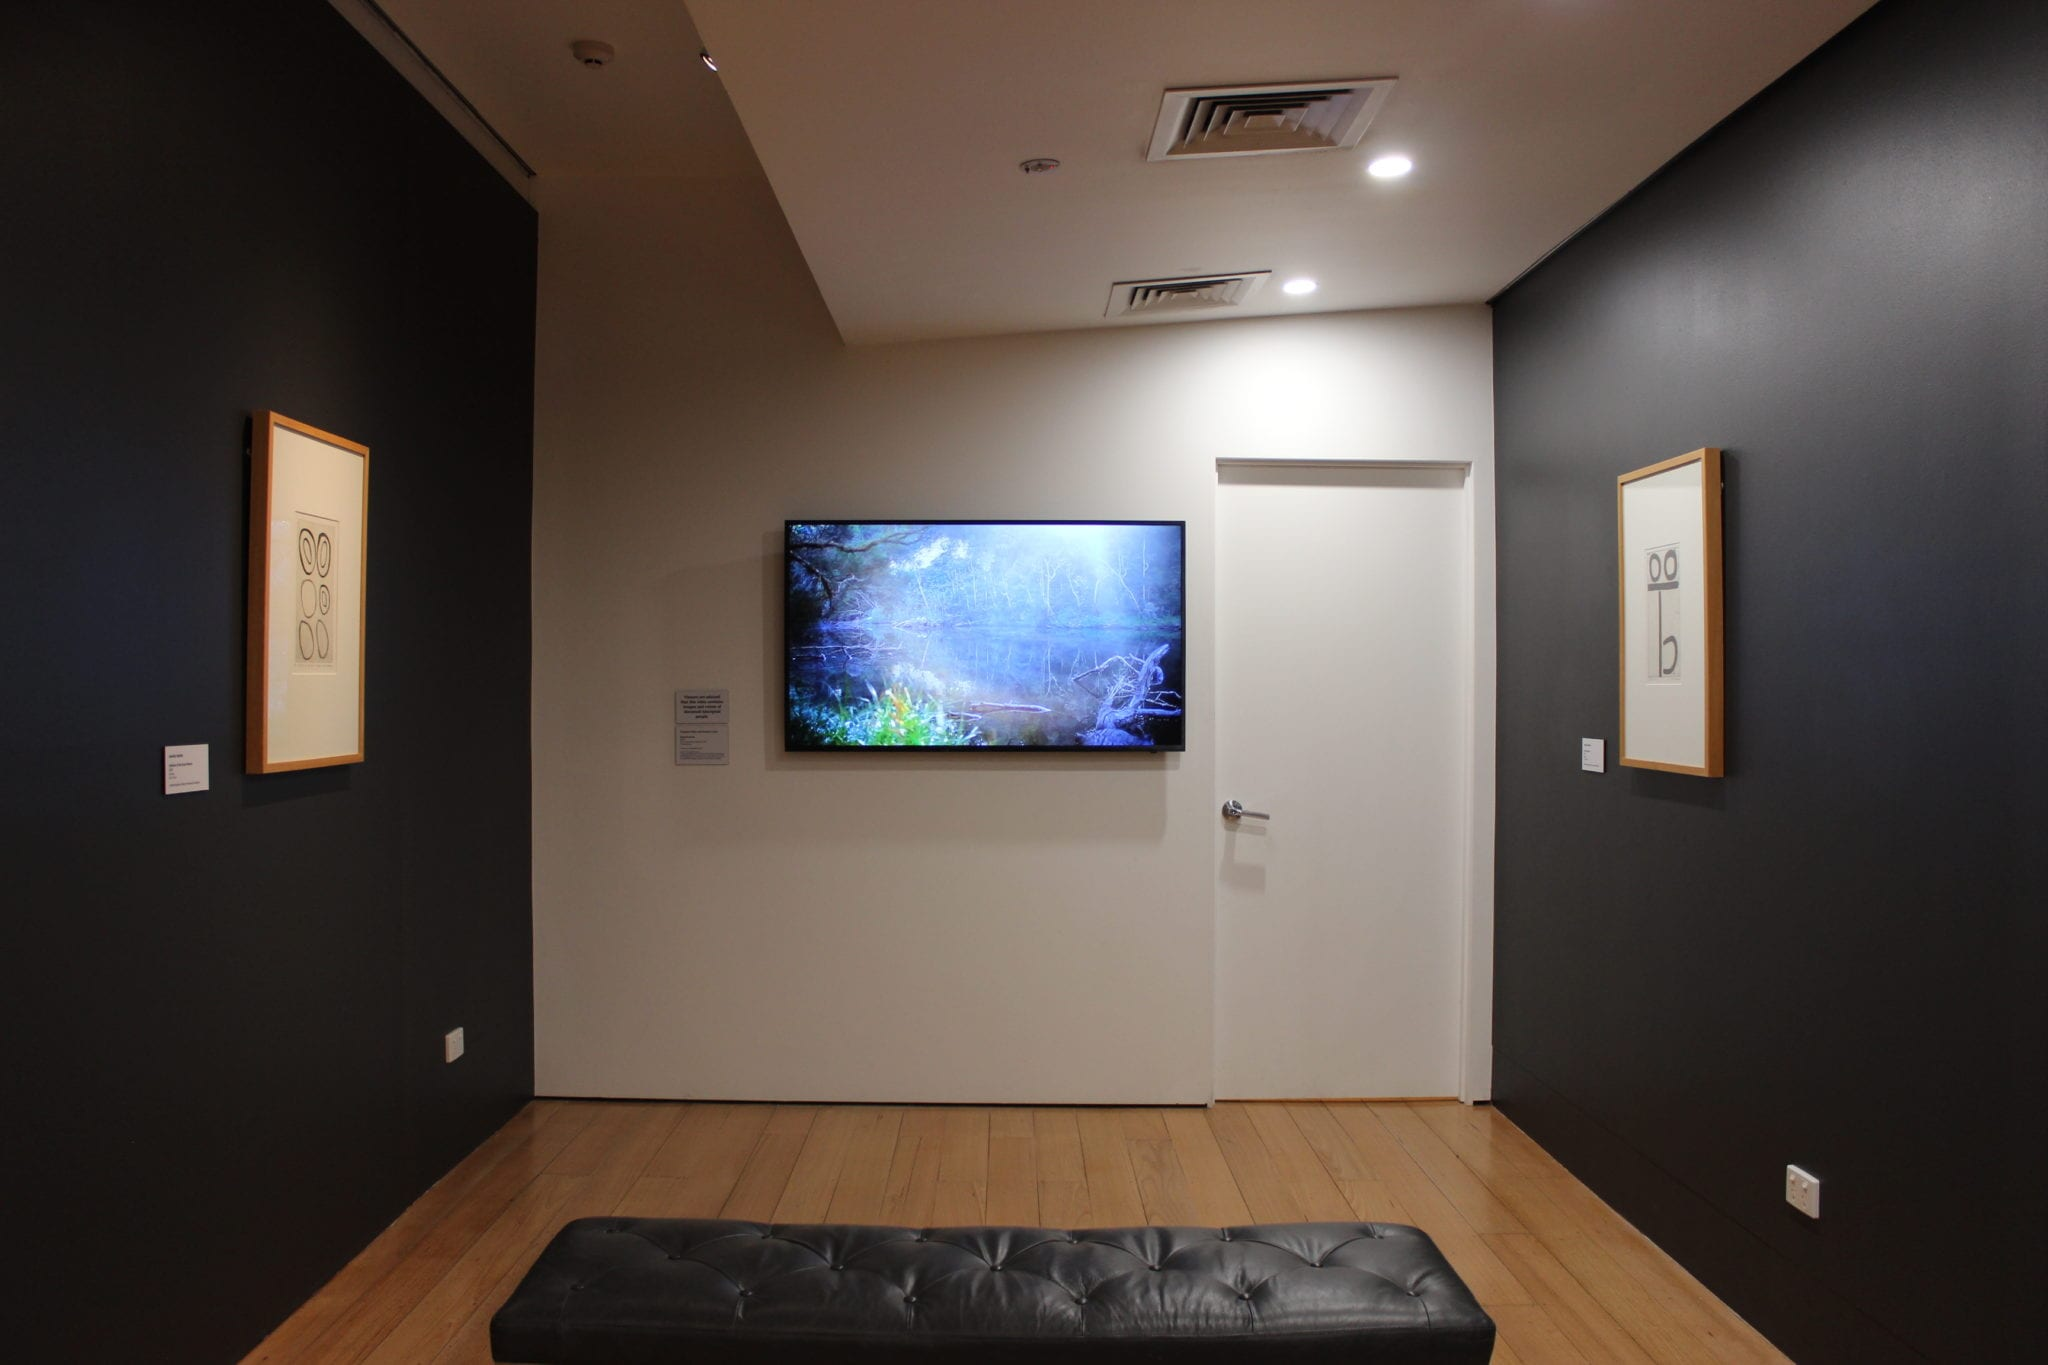 Exhibition Documentation, 'Voice, Treaty, Truth', Gunaikurnai artworks from the Latrobe Regional Gallery collection and by Uncle Albert Mullett and Steaphan Paton, 6 July 2019 to 6 October 2019, The Lane Gallery, Latrobe Regional Gallery. Photograph: Latrobe Regional Gallery.